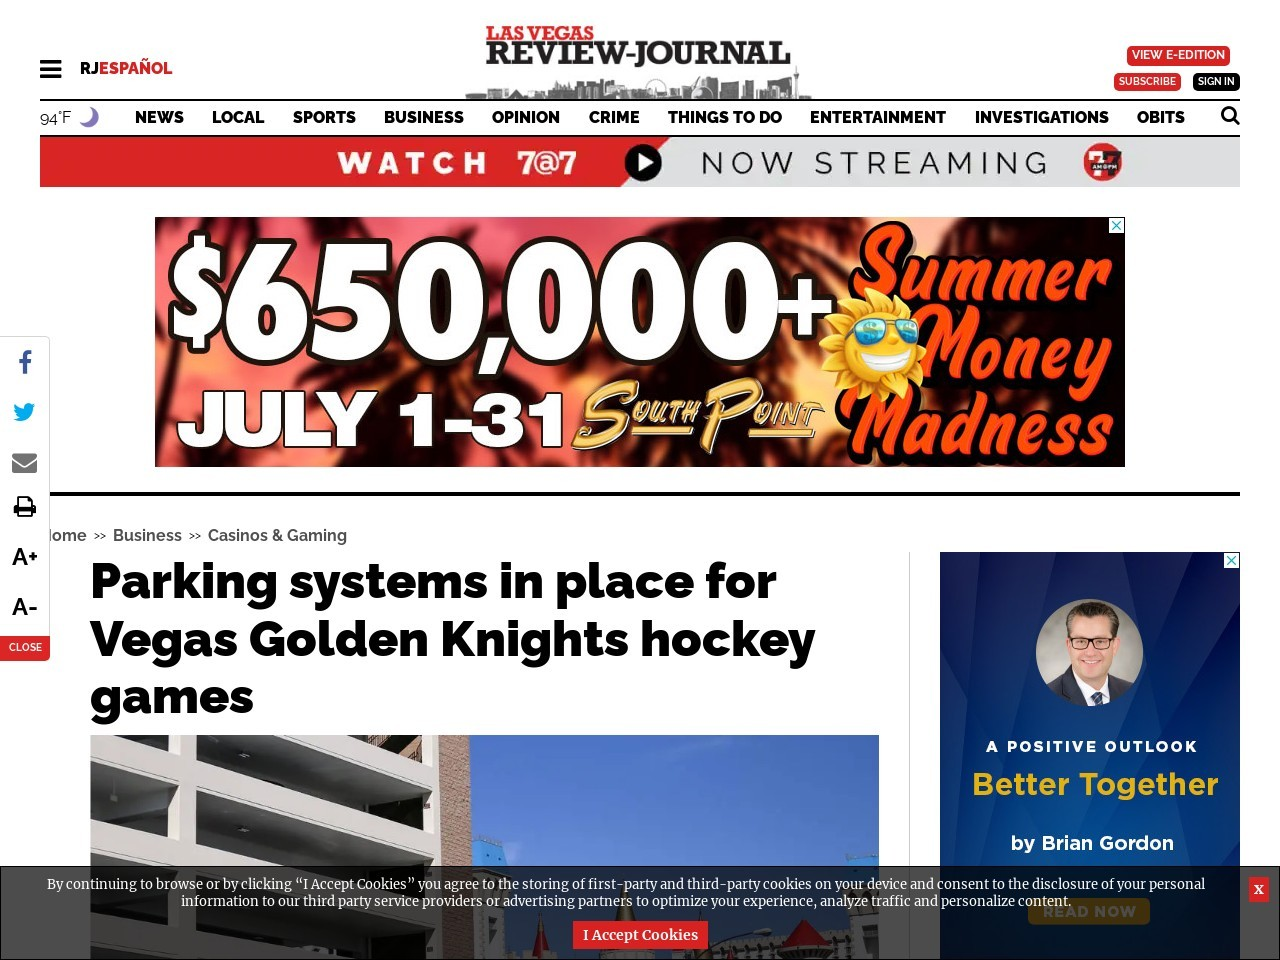 Parking systems in place for Vegas Golden Knights hockey games